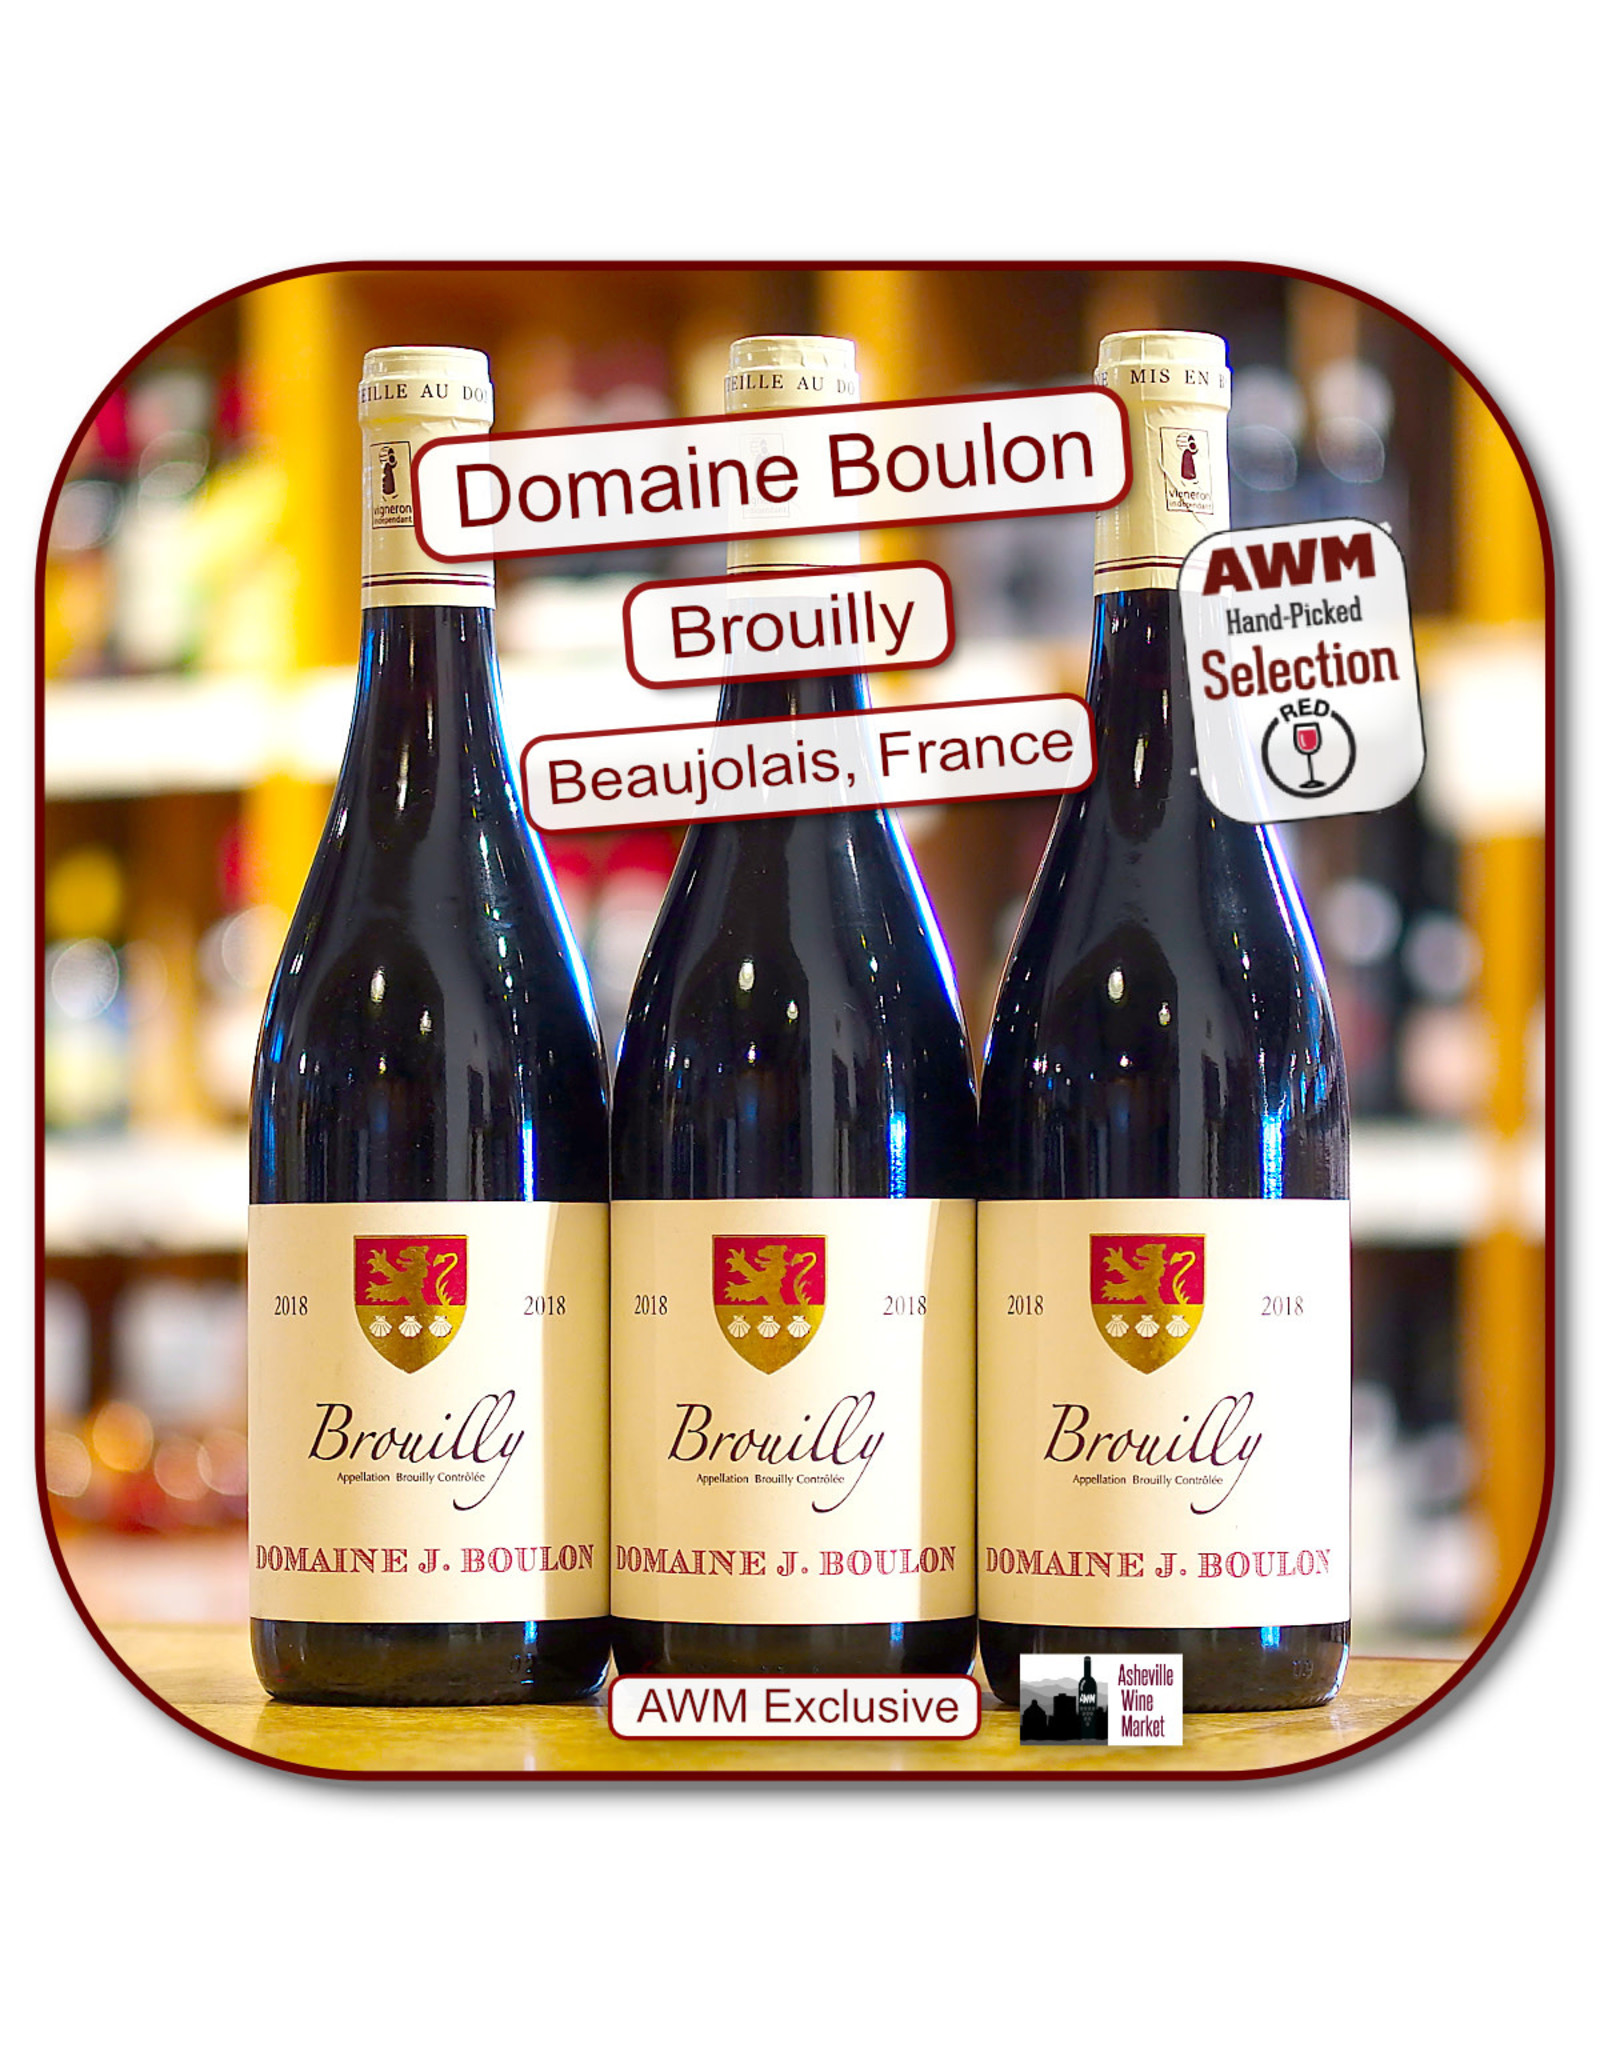 Gamay Boulon Brouilly 19